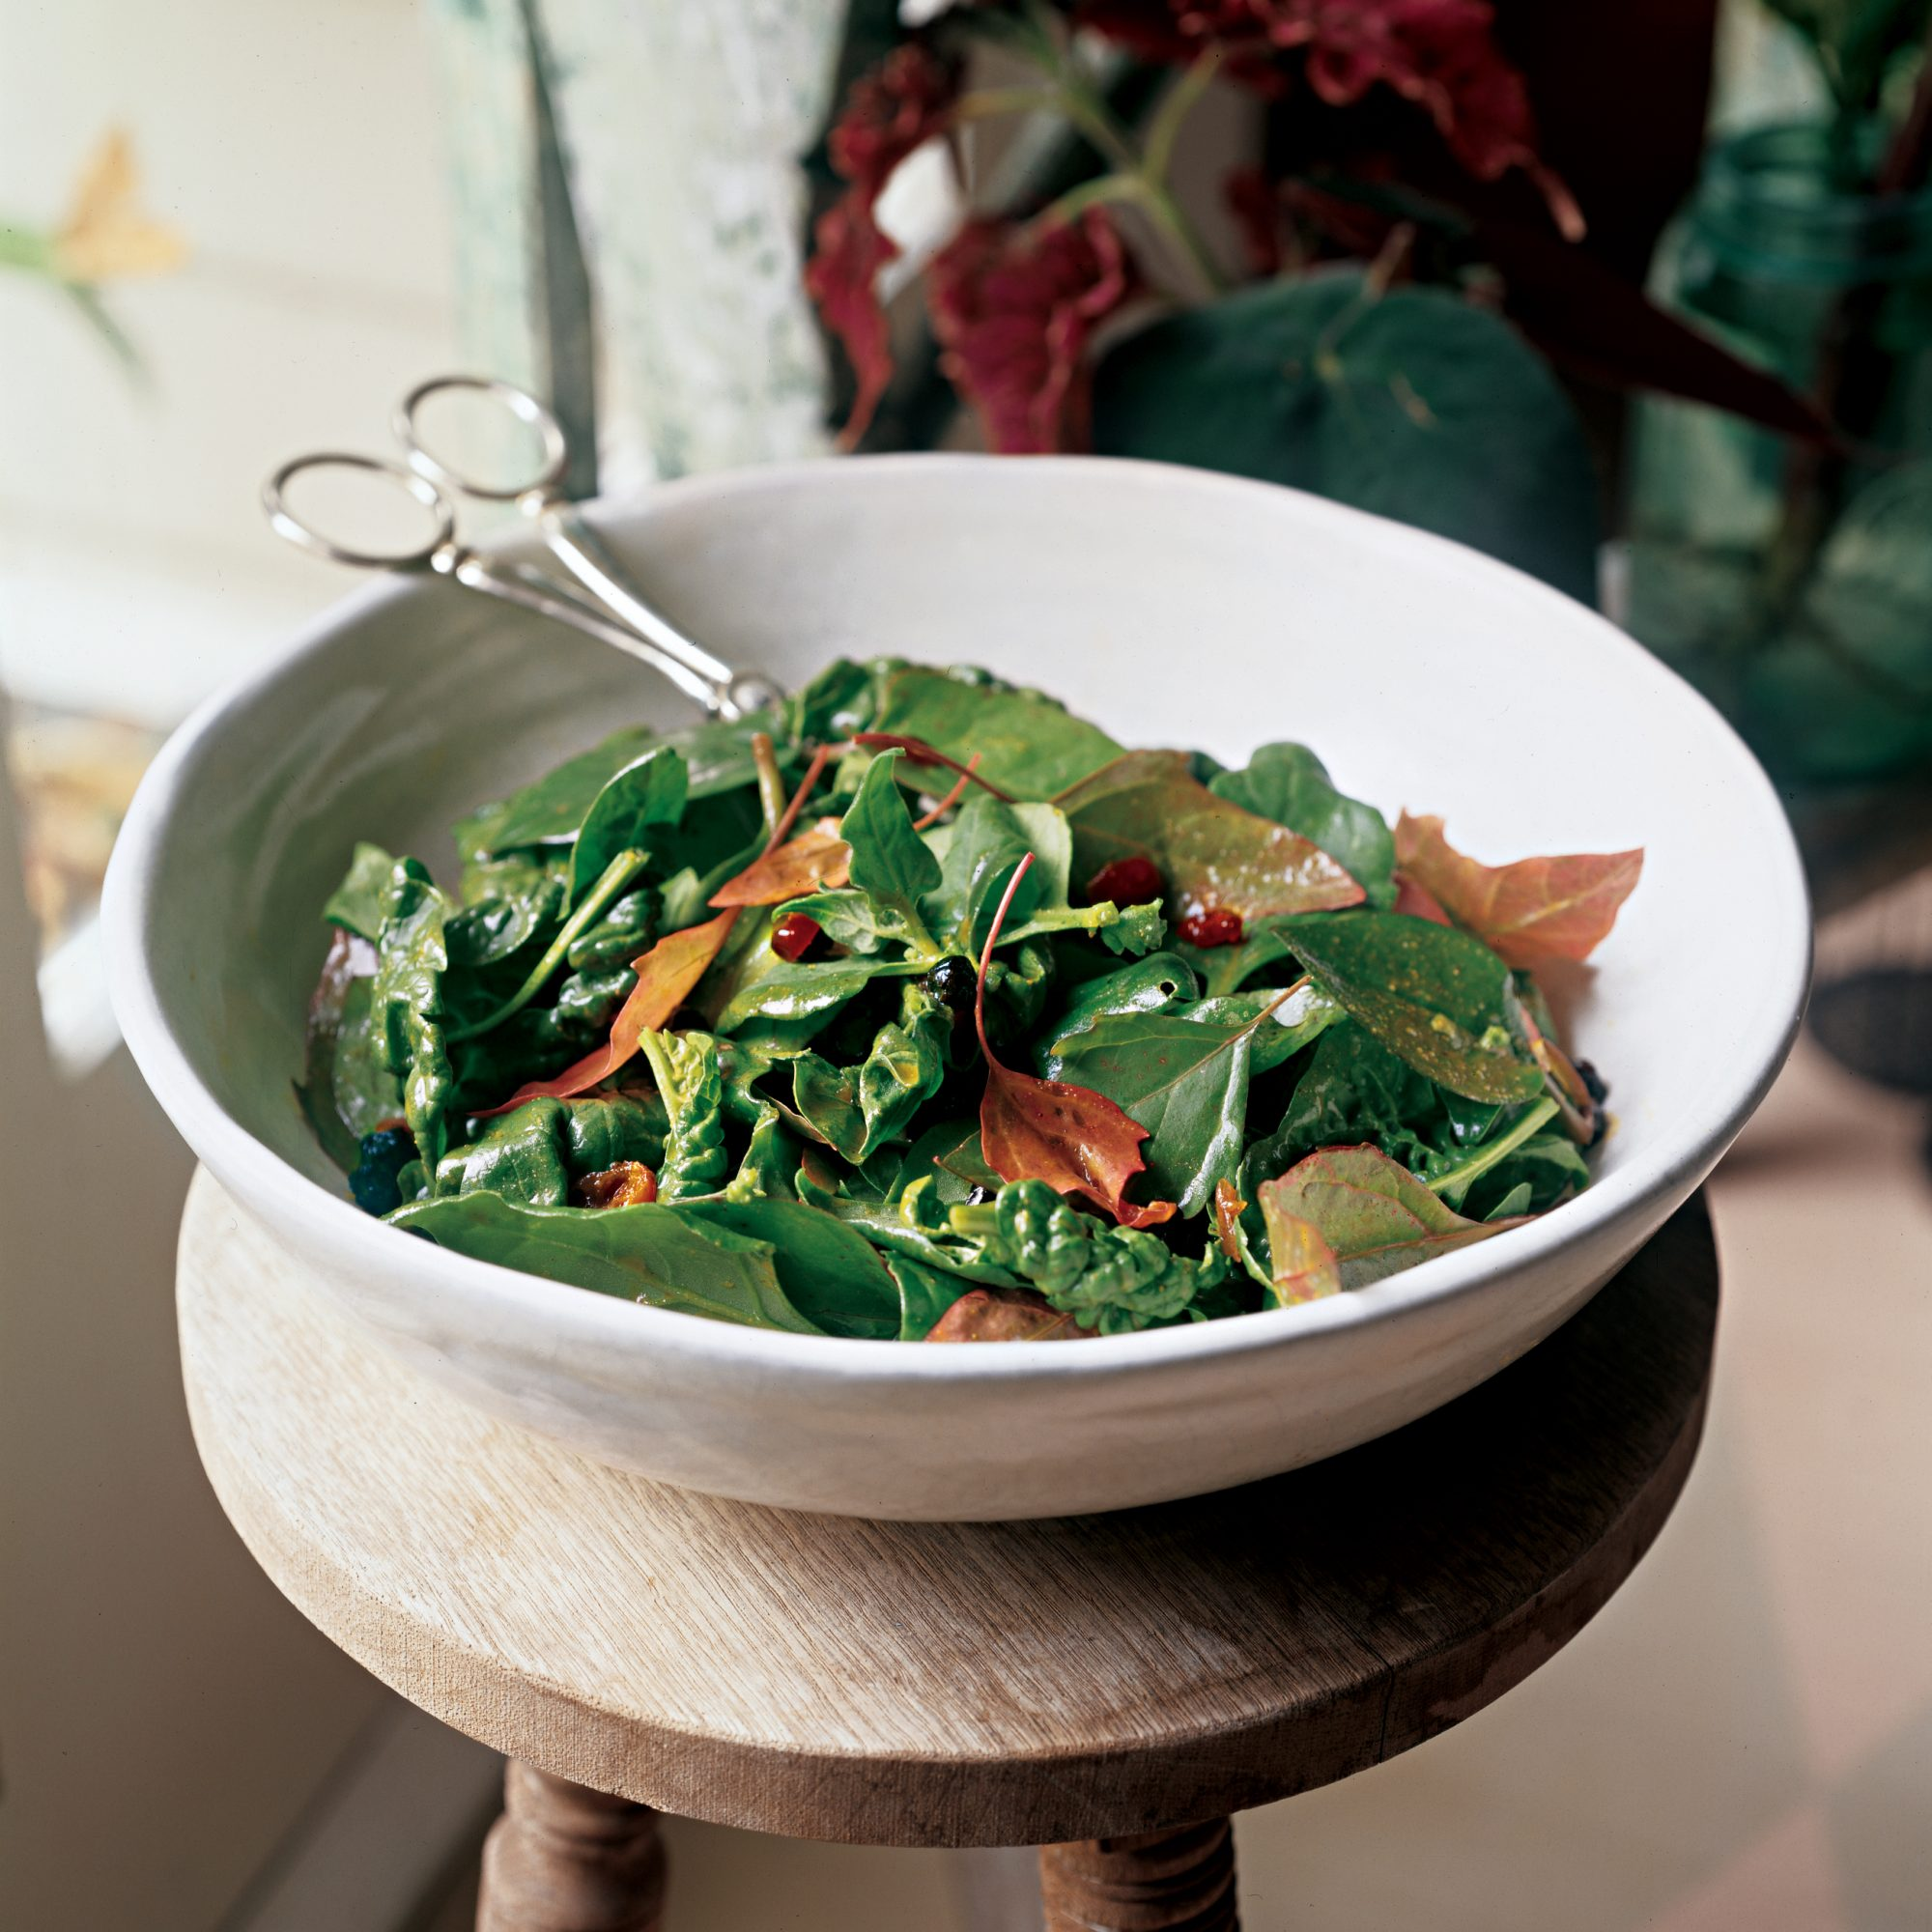 Tropical Spinach Salad with Warm Fruit Vinaigrette